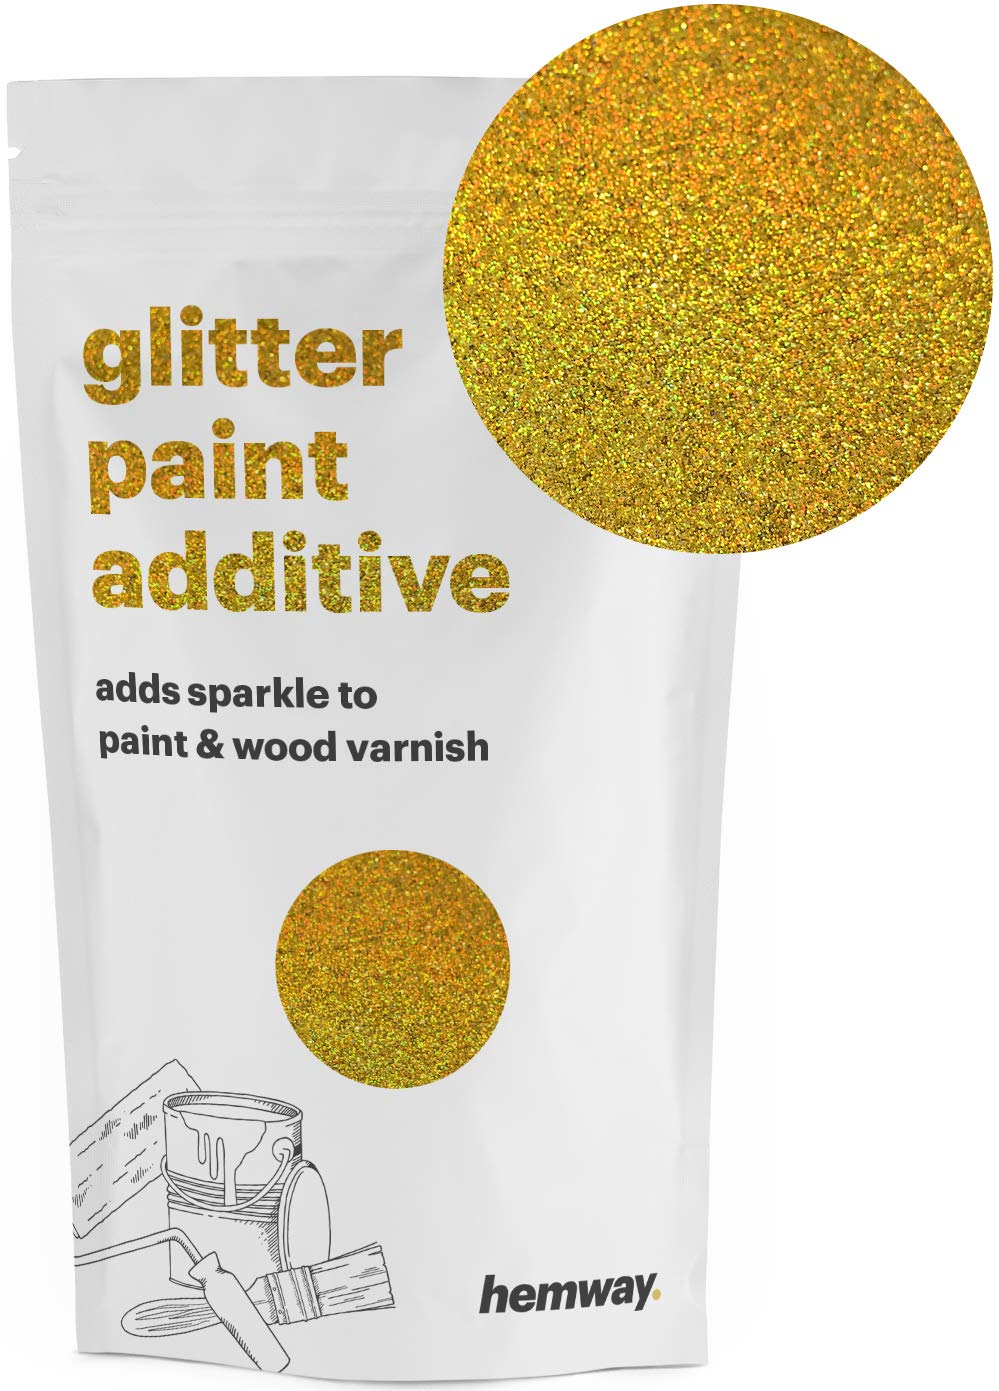 Hemway | Glitter Paint Additive 110g / 3.5oz Acrylic Latex Emulsion Water Based Paints Interior/Exterior Wall, Ceiling, Wood, Metal, Varnish, Dead Flat, Matte (Gold Holographic)